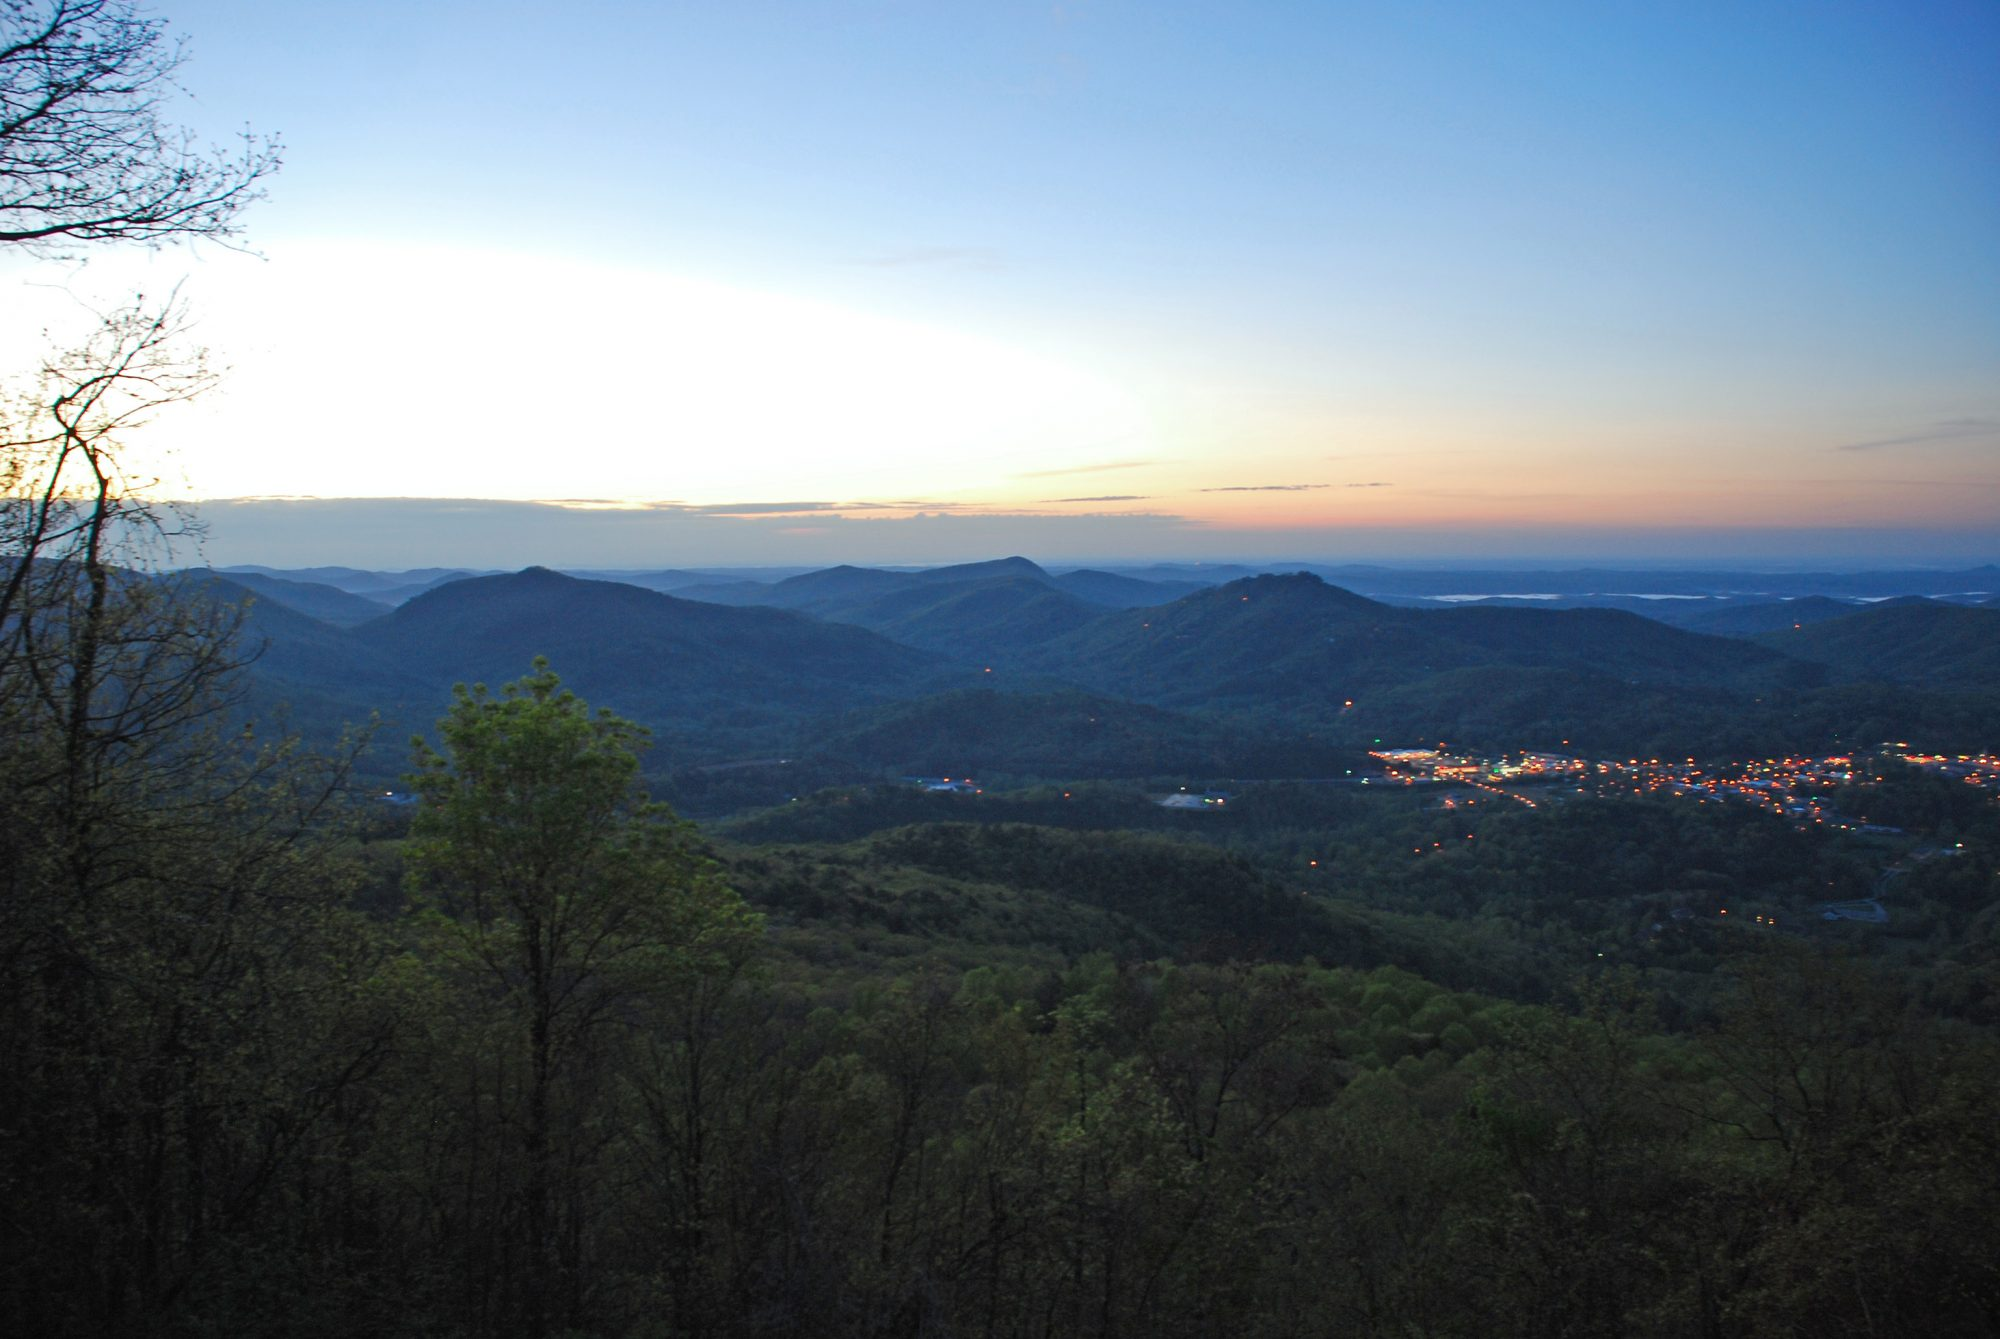 Georgia: Black Rock Mountain State Park in Mountain City